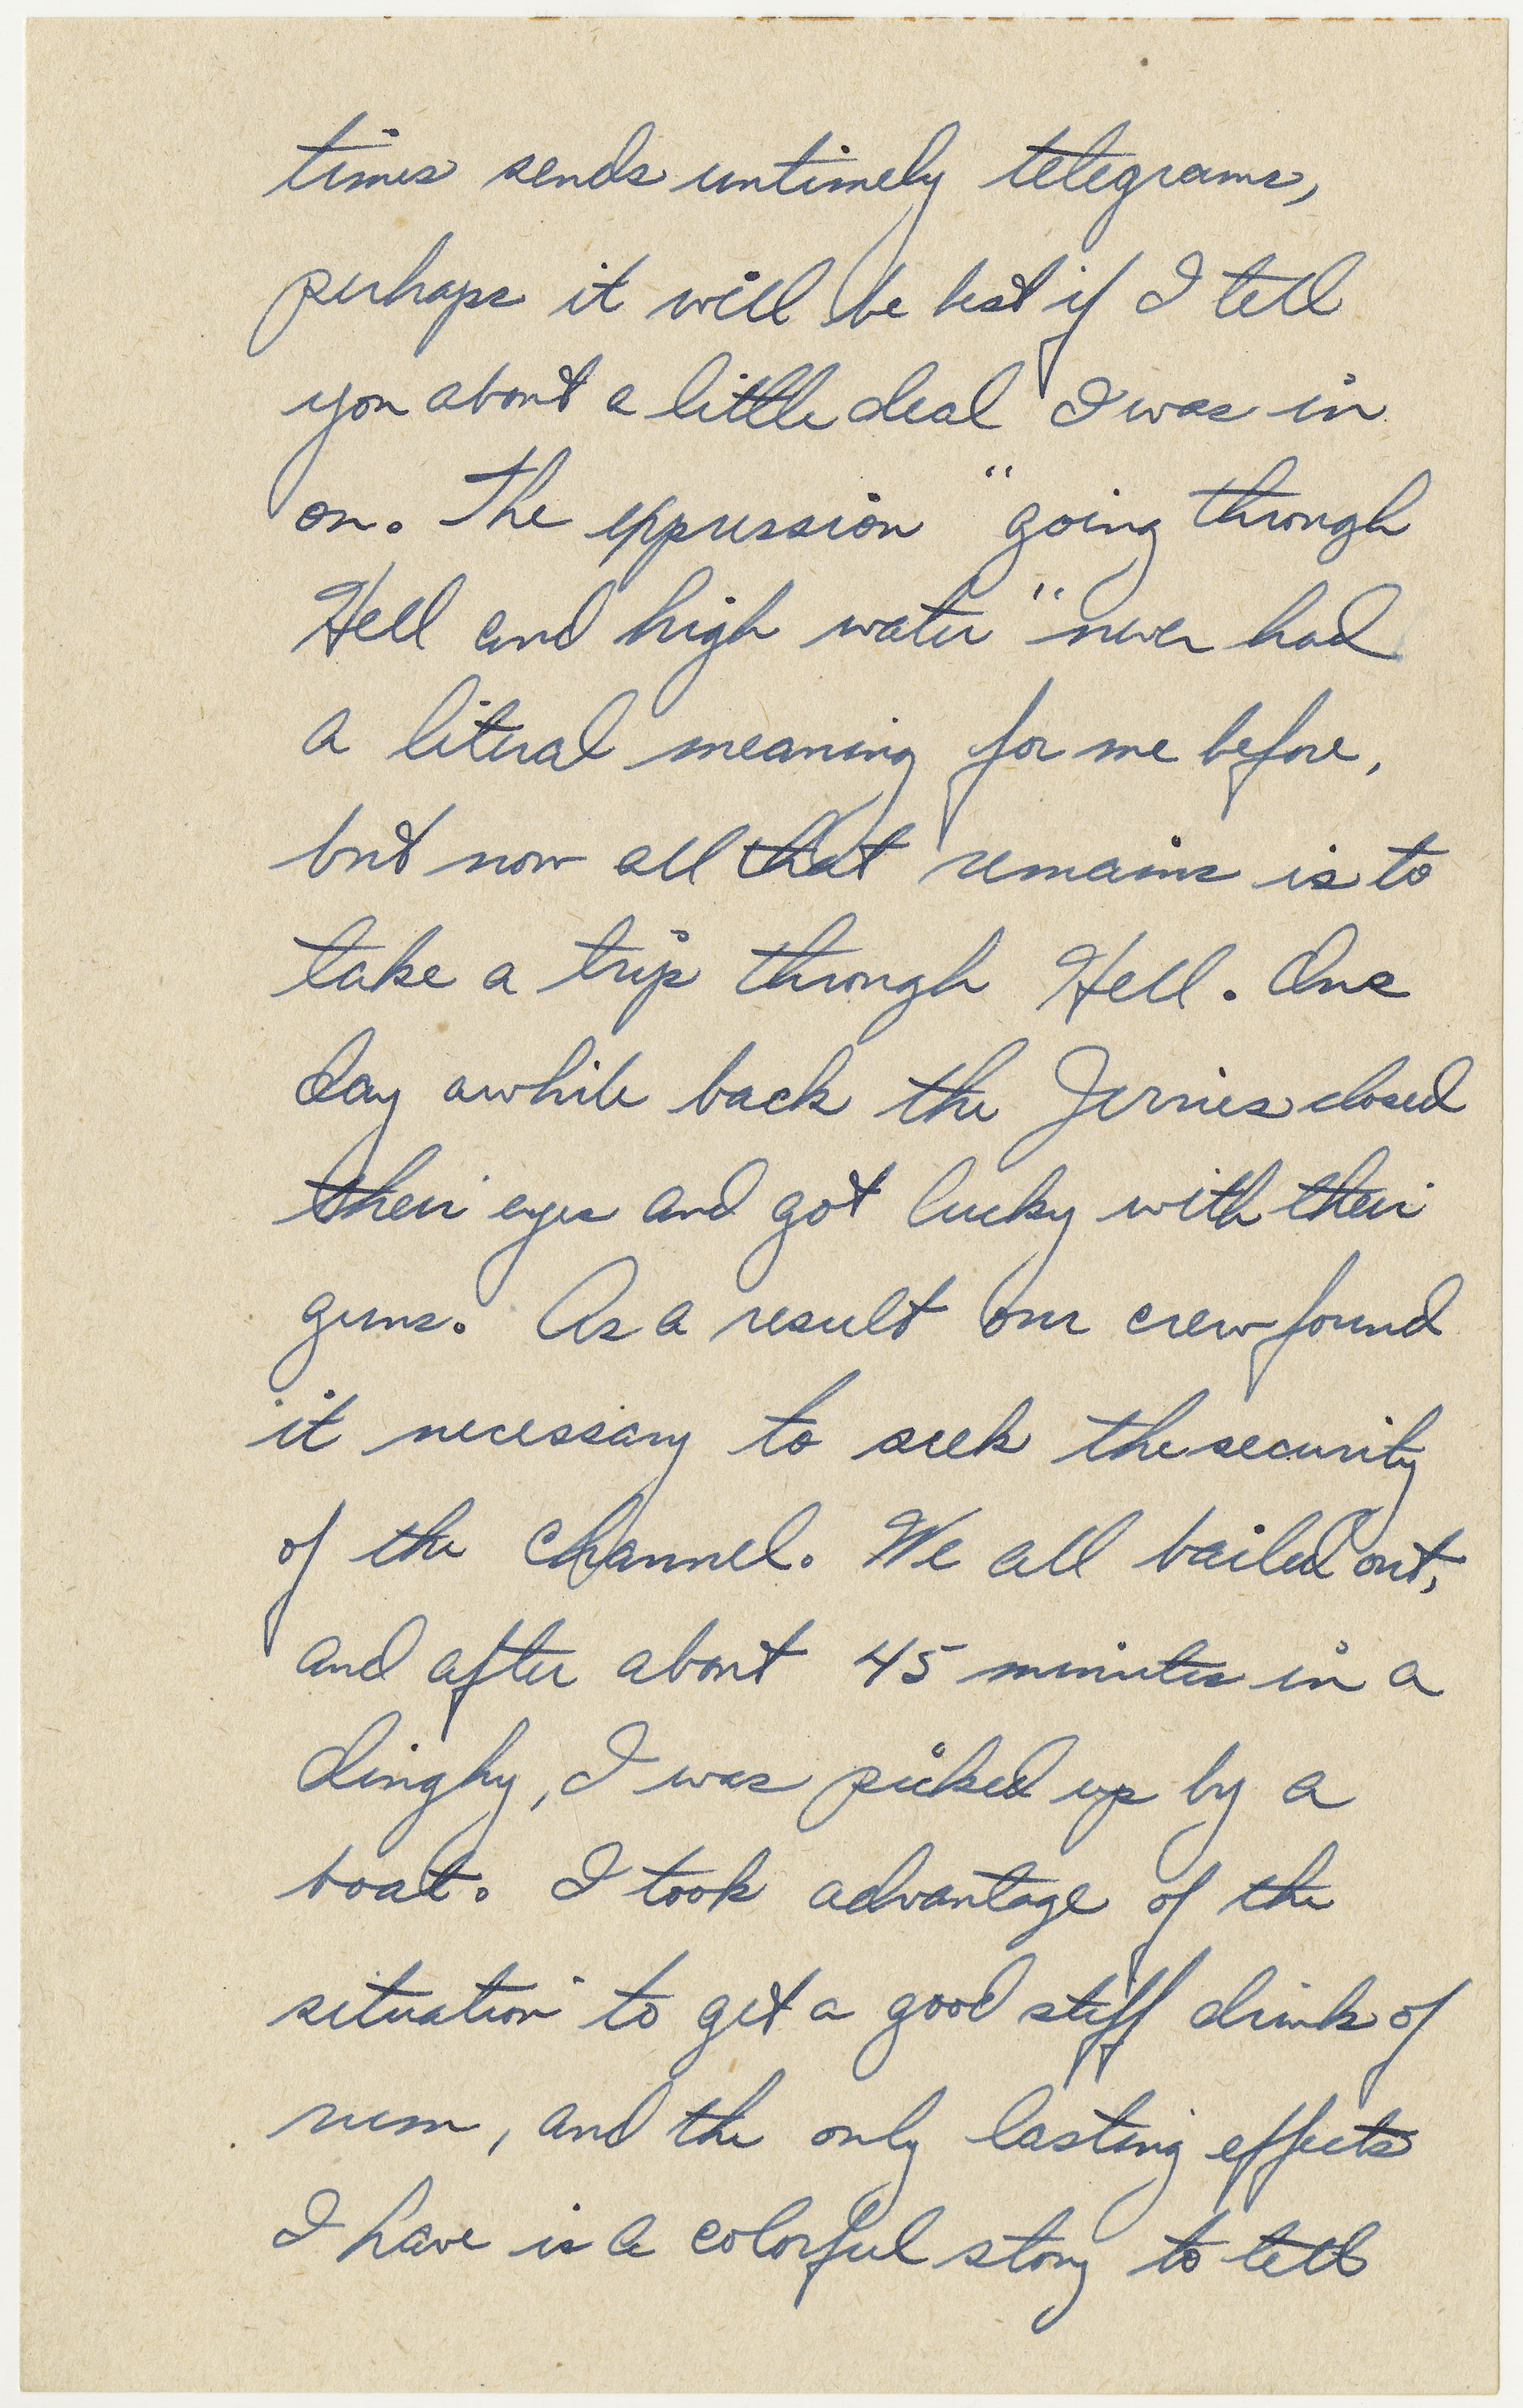 page 2 of letter written by Bischoff on May 12, 1944